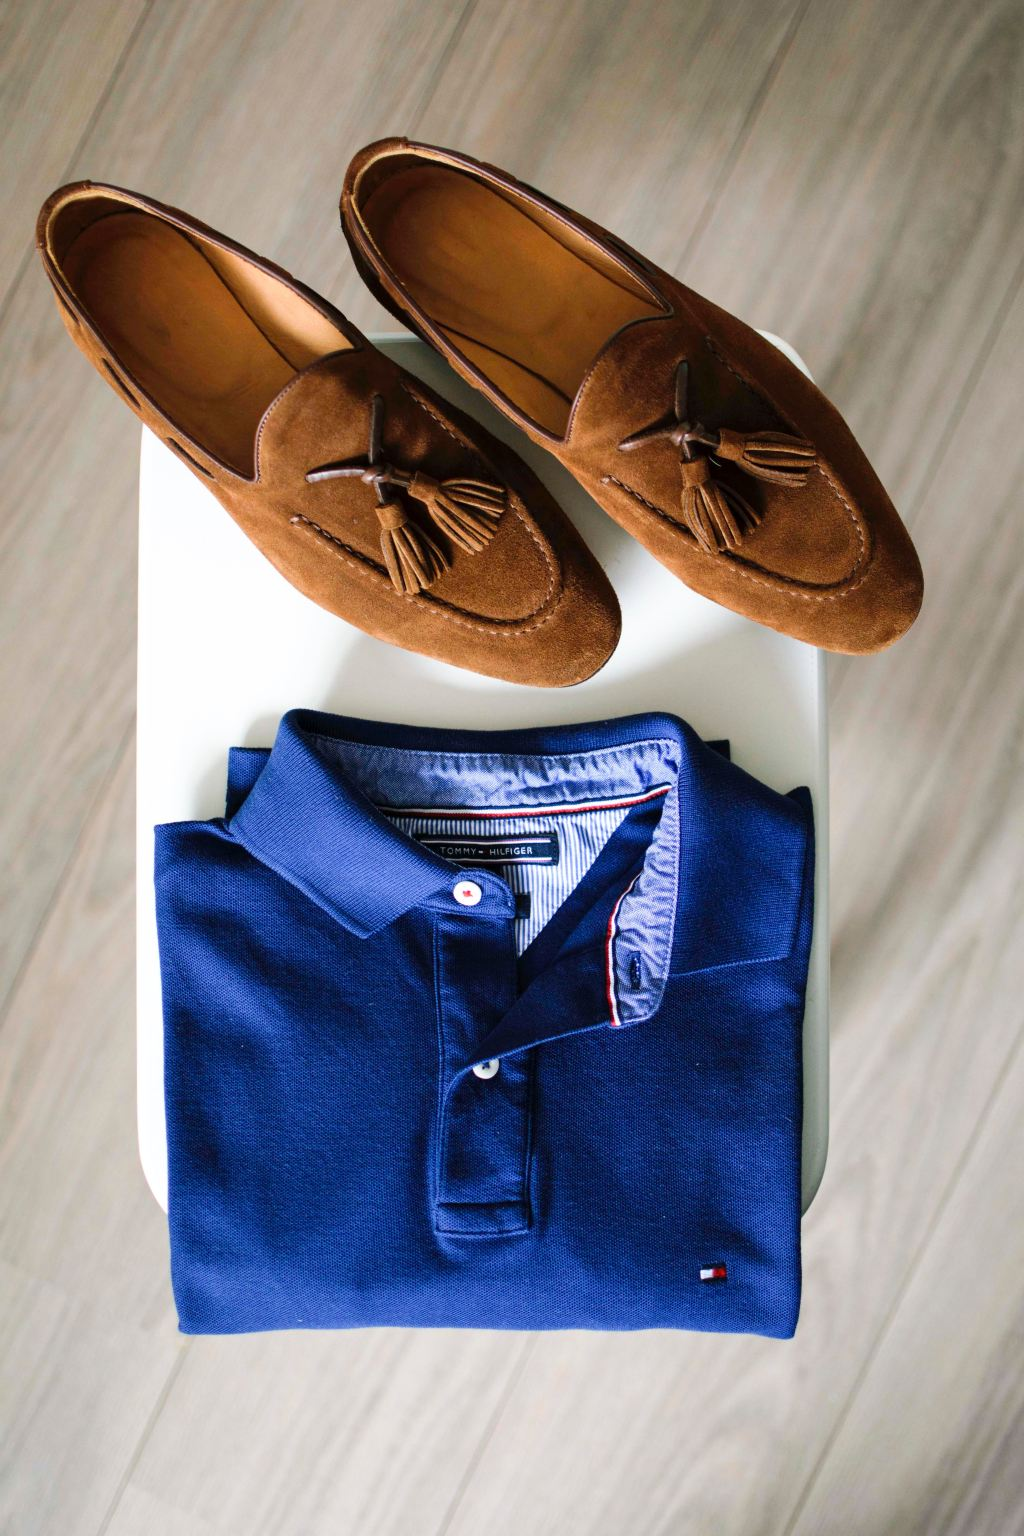 11 Summer Styling Tips for Men